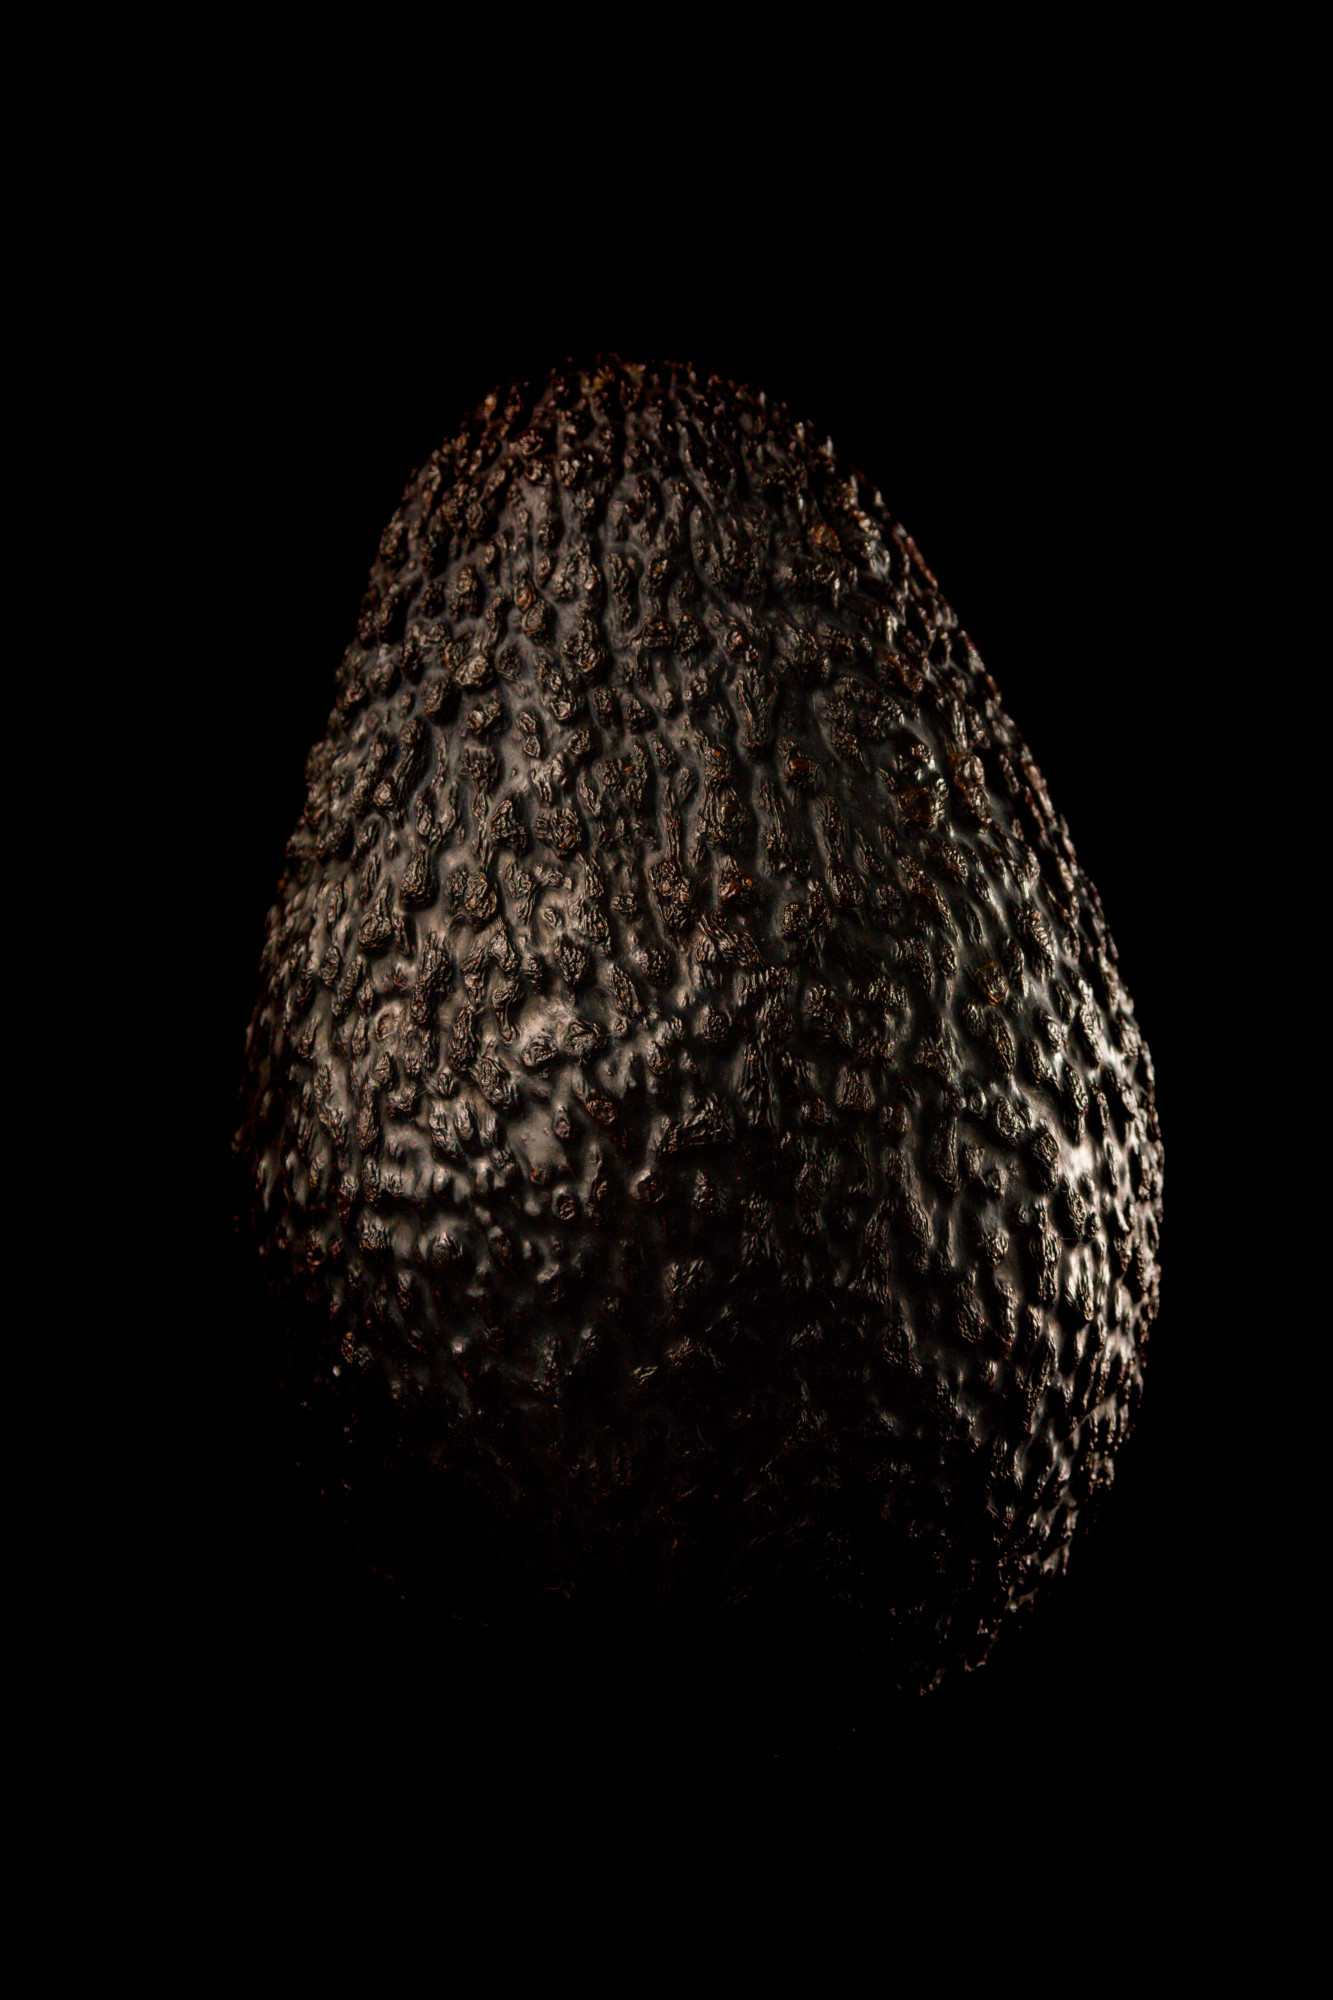 Portrait of an avocado on a dark background.